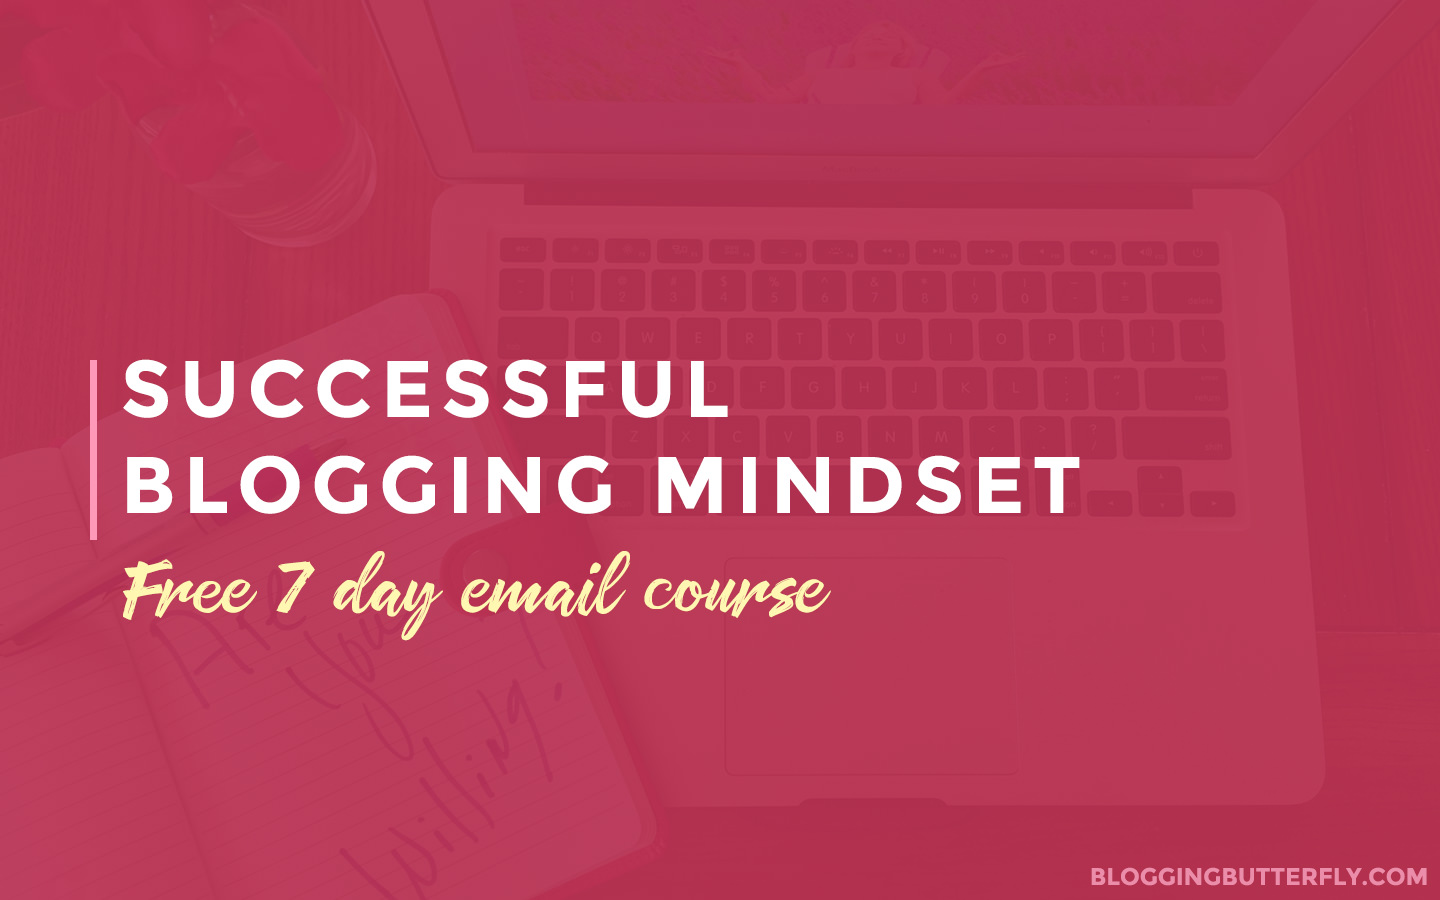 Successful Blogging Mindset free 7 day email course